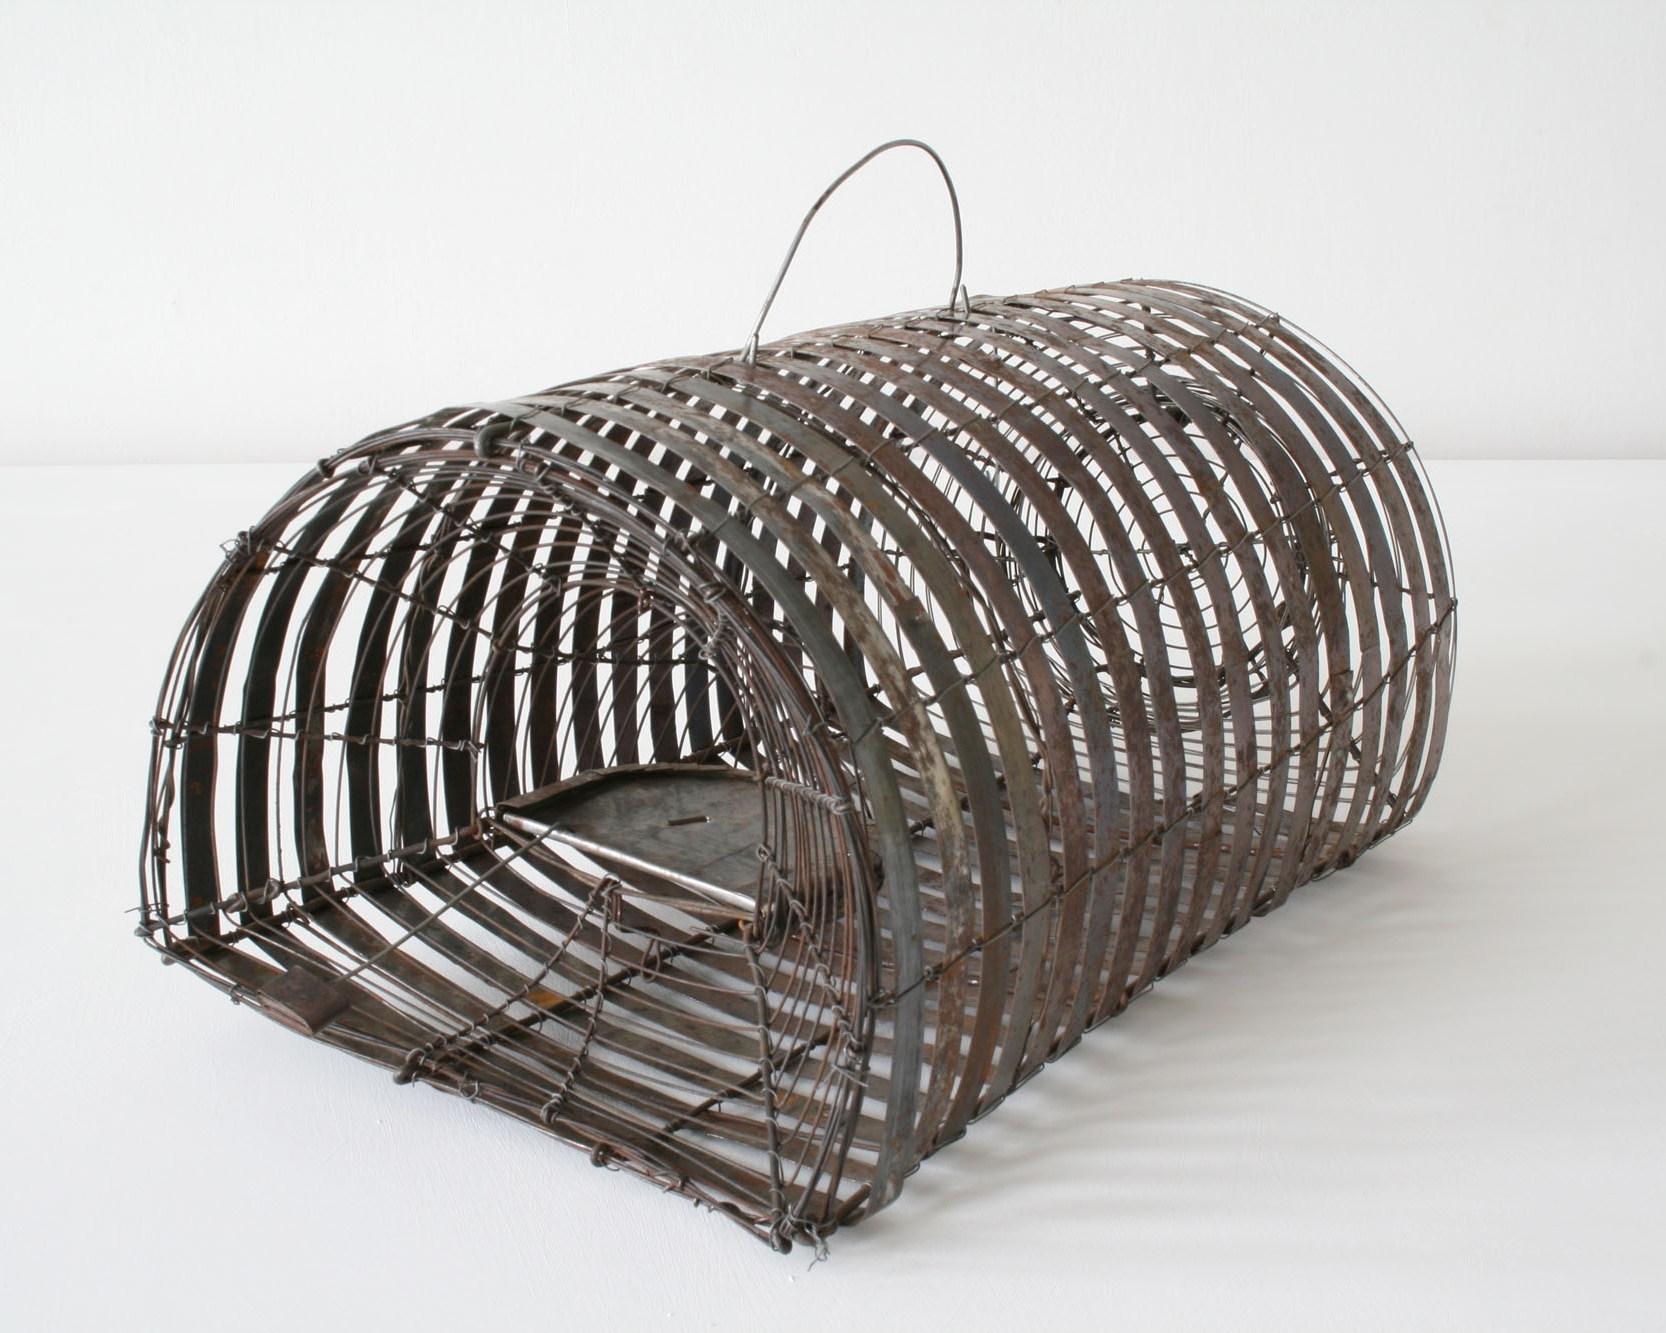 Rat trap made of wire and scrap metal strapping